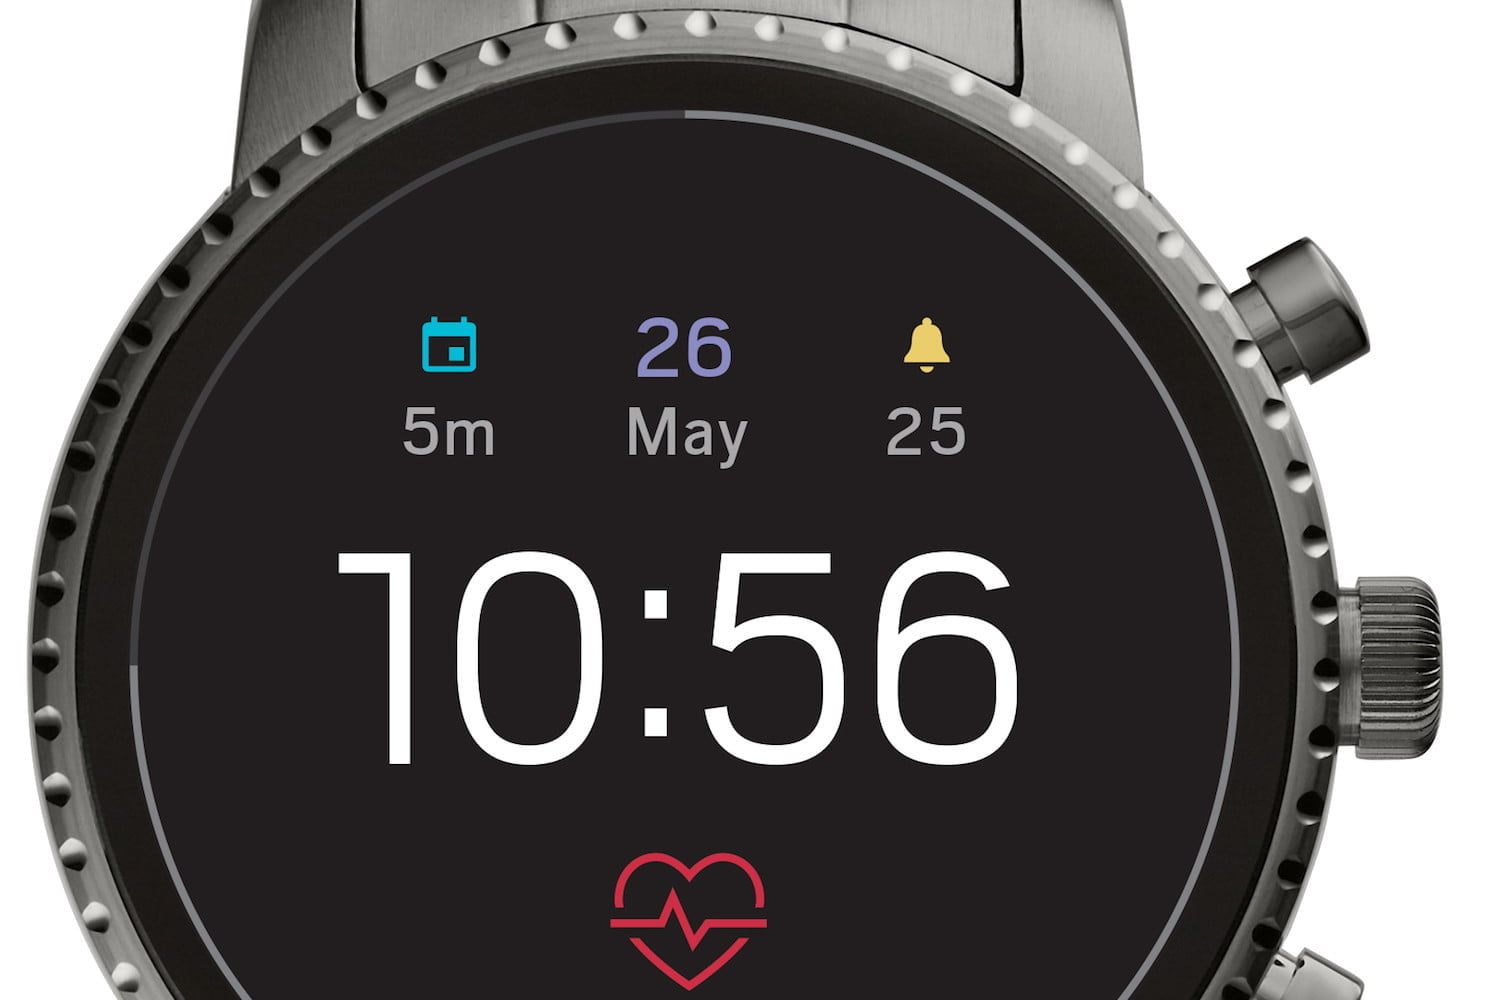 Fossil S New Smartwatches Make Your Heart Beat Faster And Show You